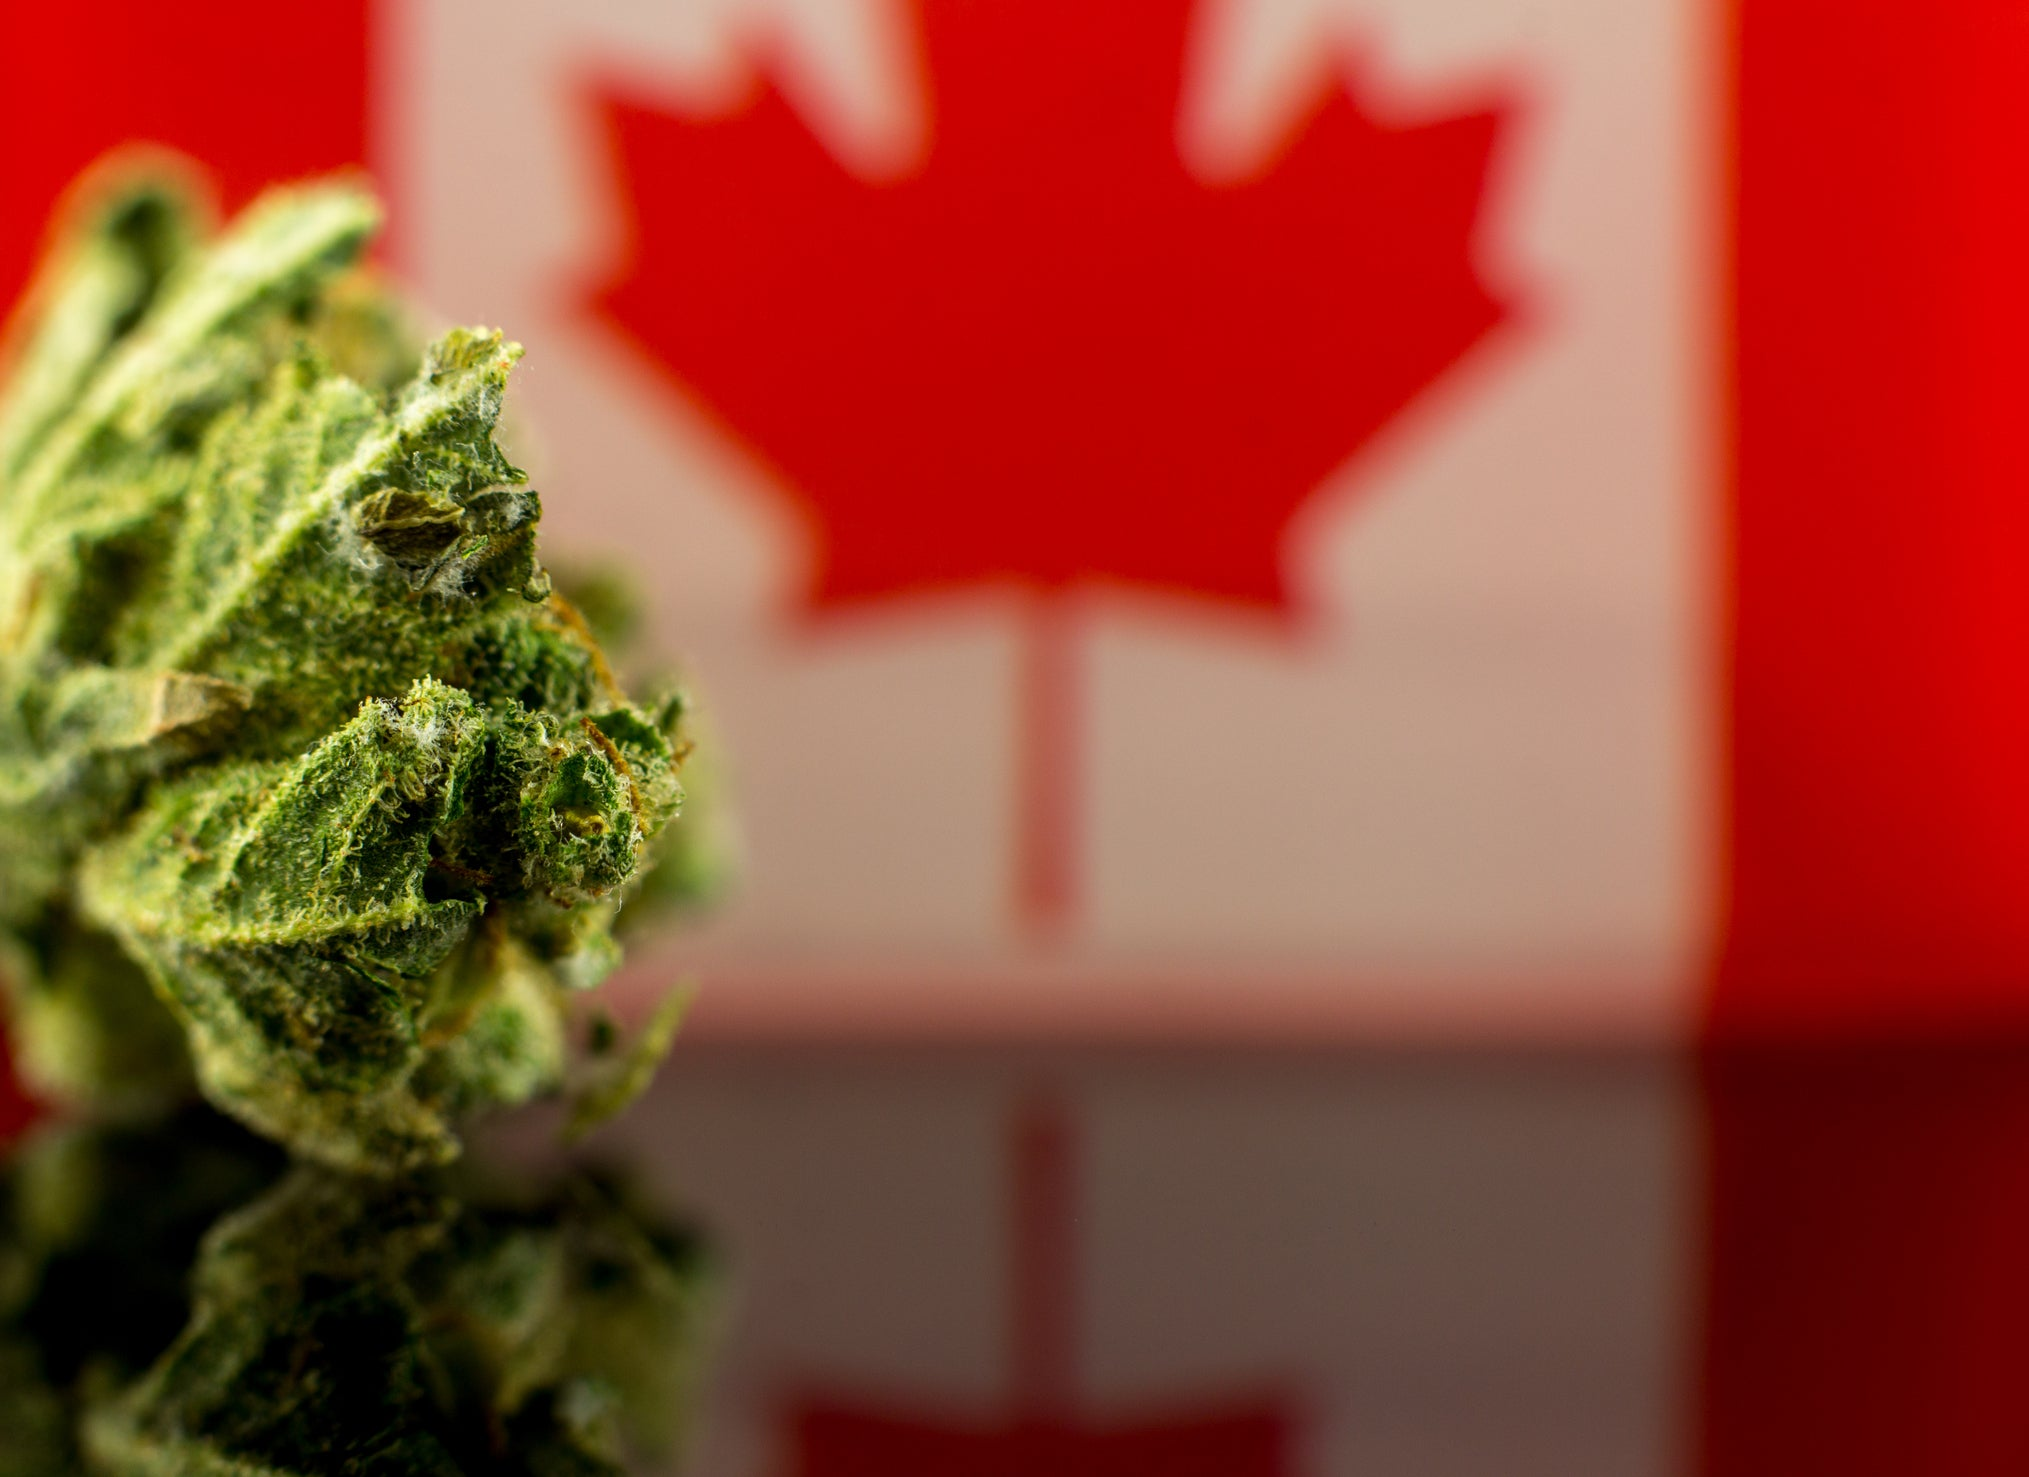 Legal Pot Sales in Canada Rise 8% in December | The Motley Fool